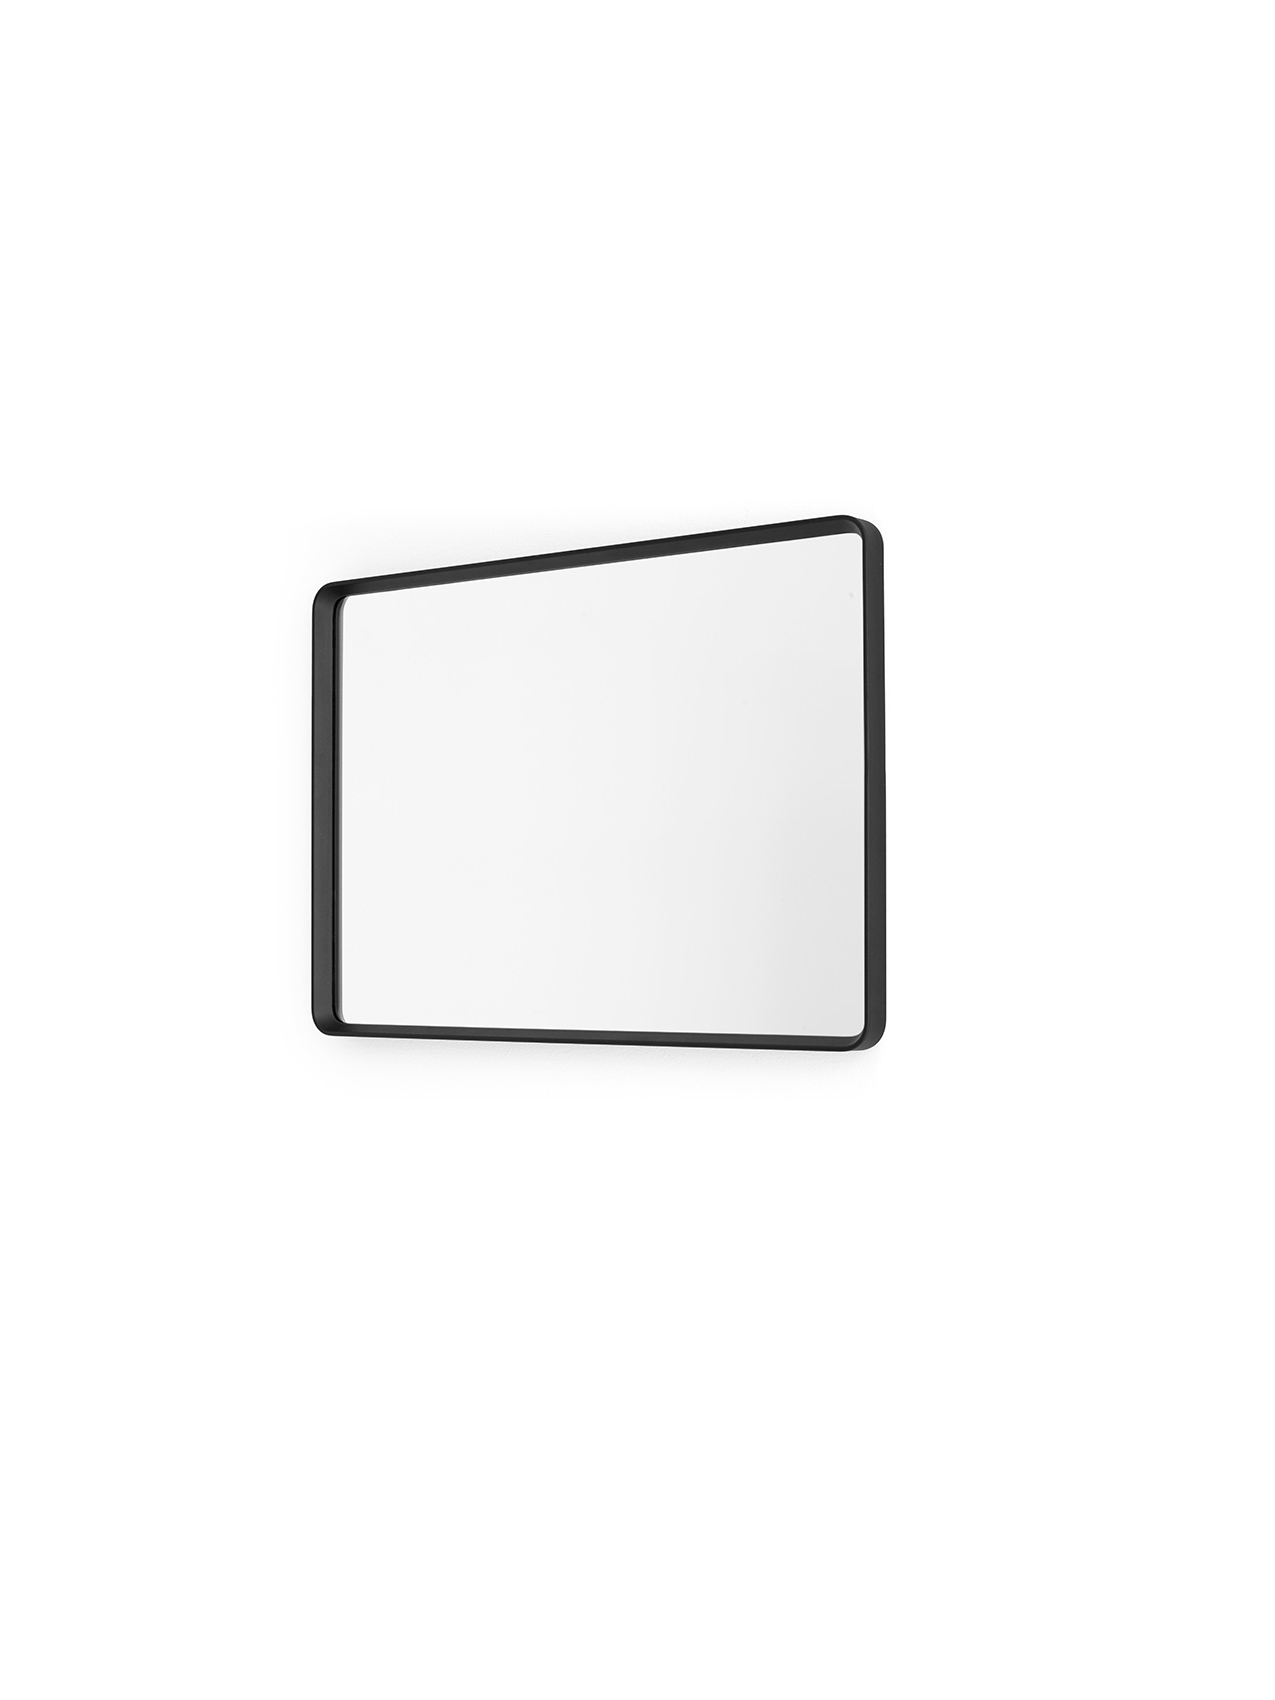 Most Recent Norm Wall Mirror, Rectangular, Black For Large Rectangular Wall Mirrors (View 2 of 20)